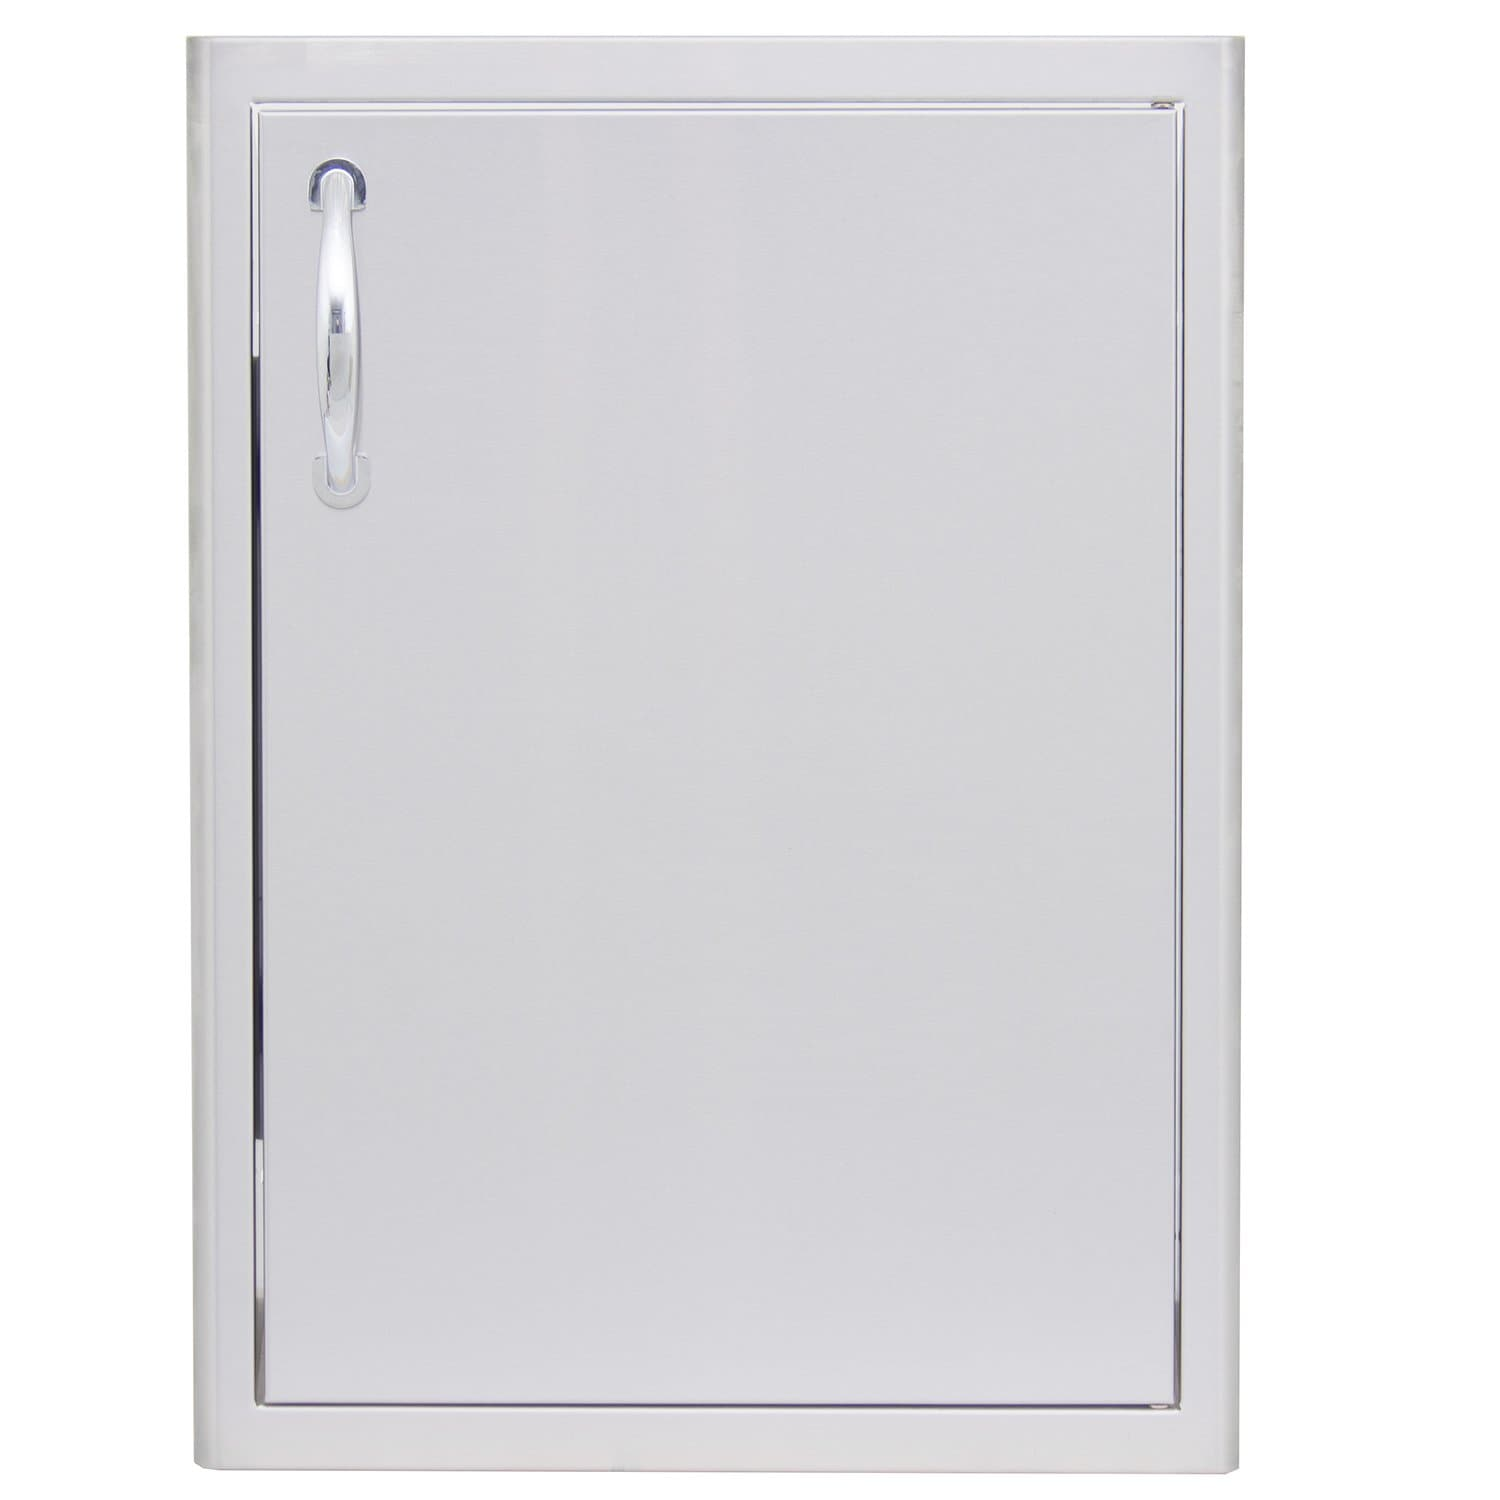 Blaze Single access Vertical Left Handed door 24 x 17-TheBBQHQ